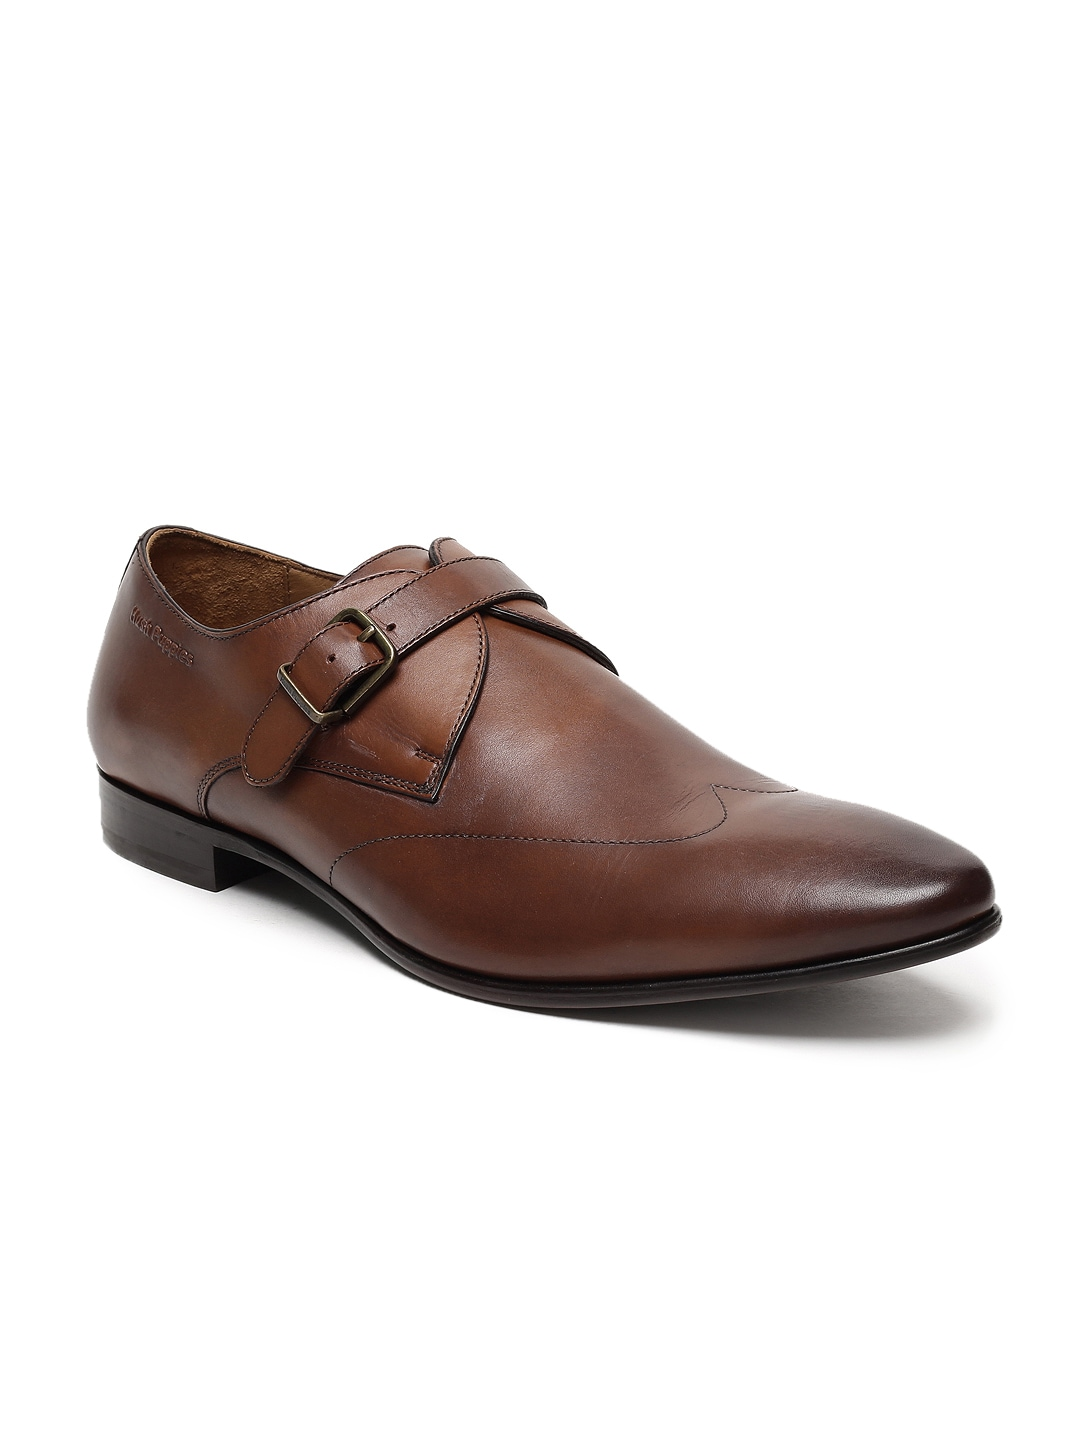 25ef06c9e240 Hush Puppies - Buy Hush Puppies shoes Online in India